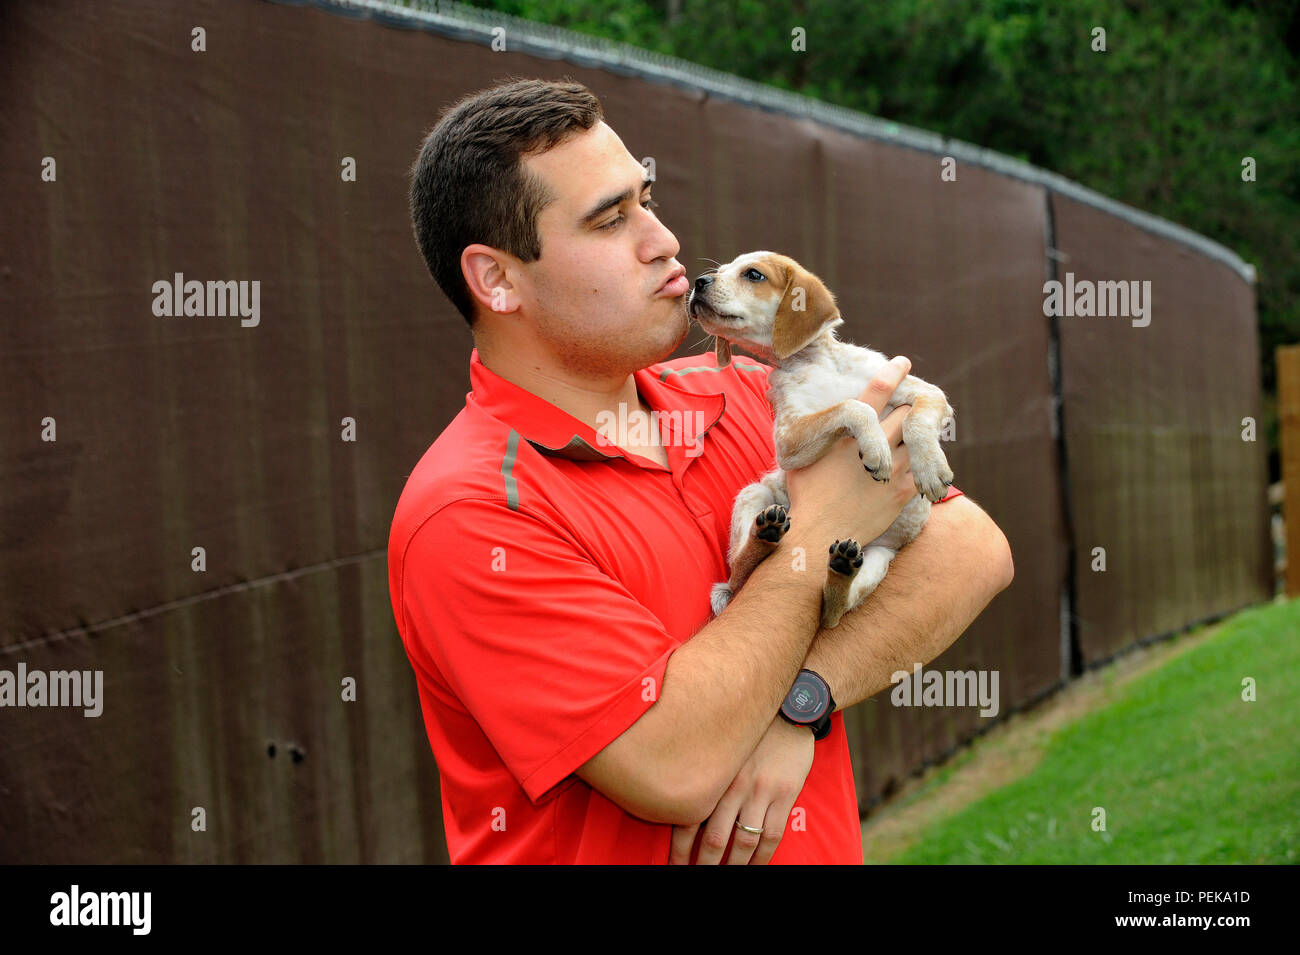 A young puppy, up for adoption, is consoled by a Latino male staff member of a local animal shelter in Gainesville, Georgia. - Stock Image